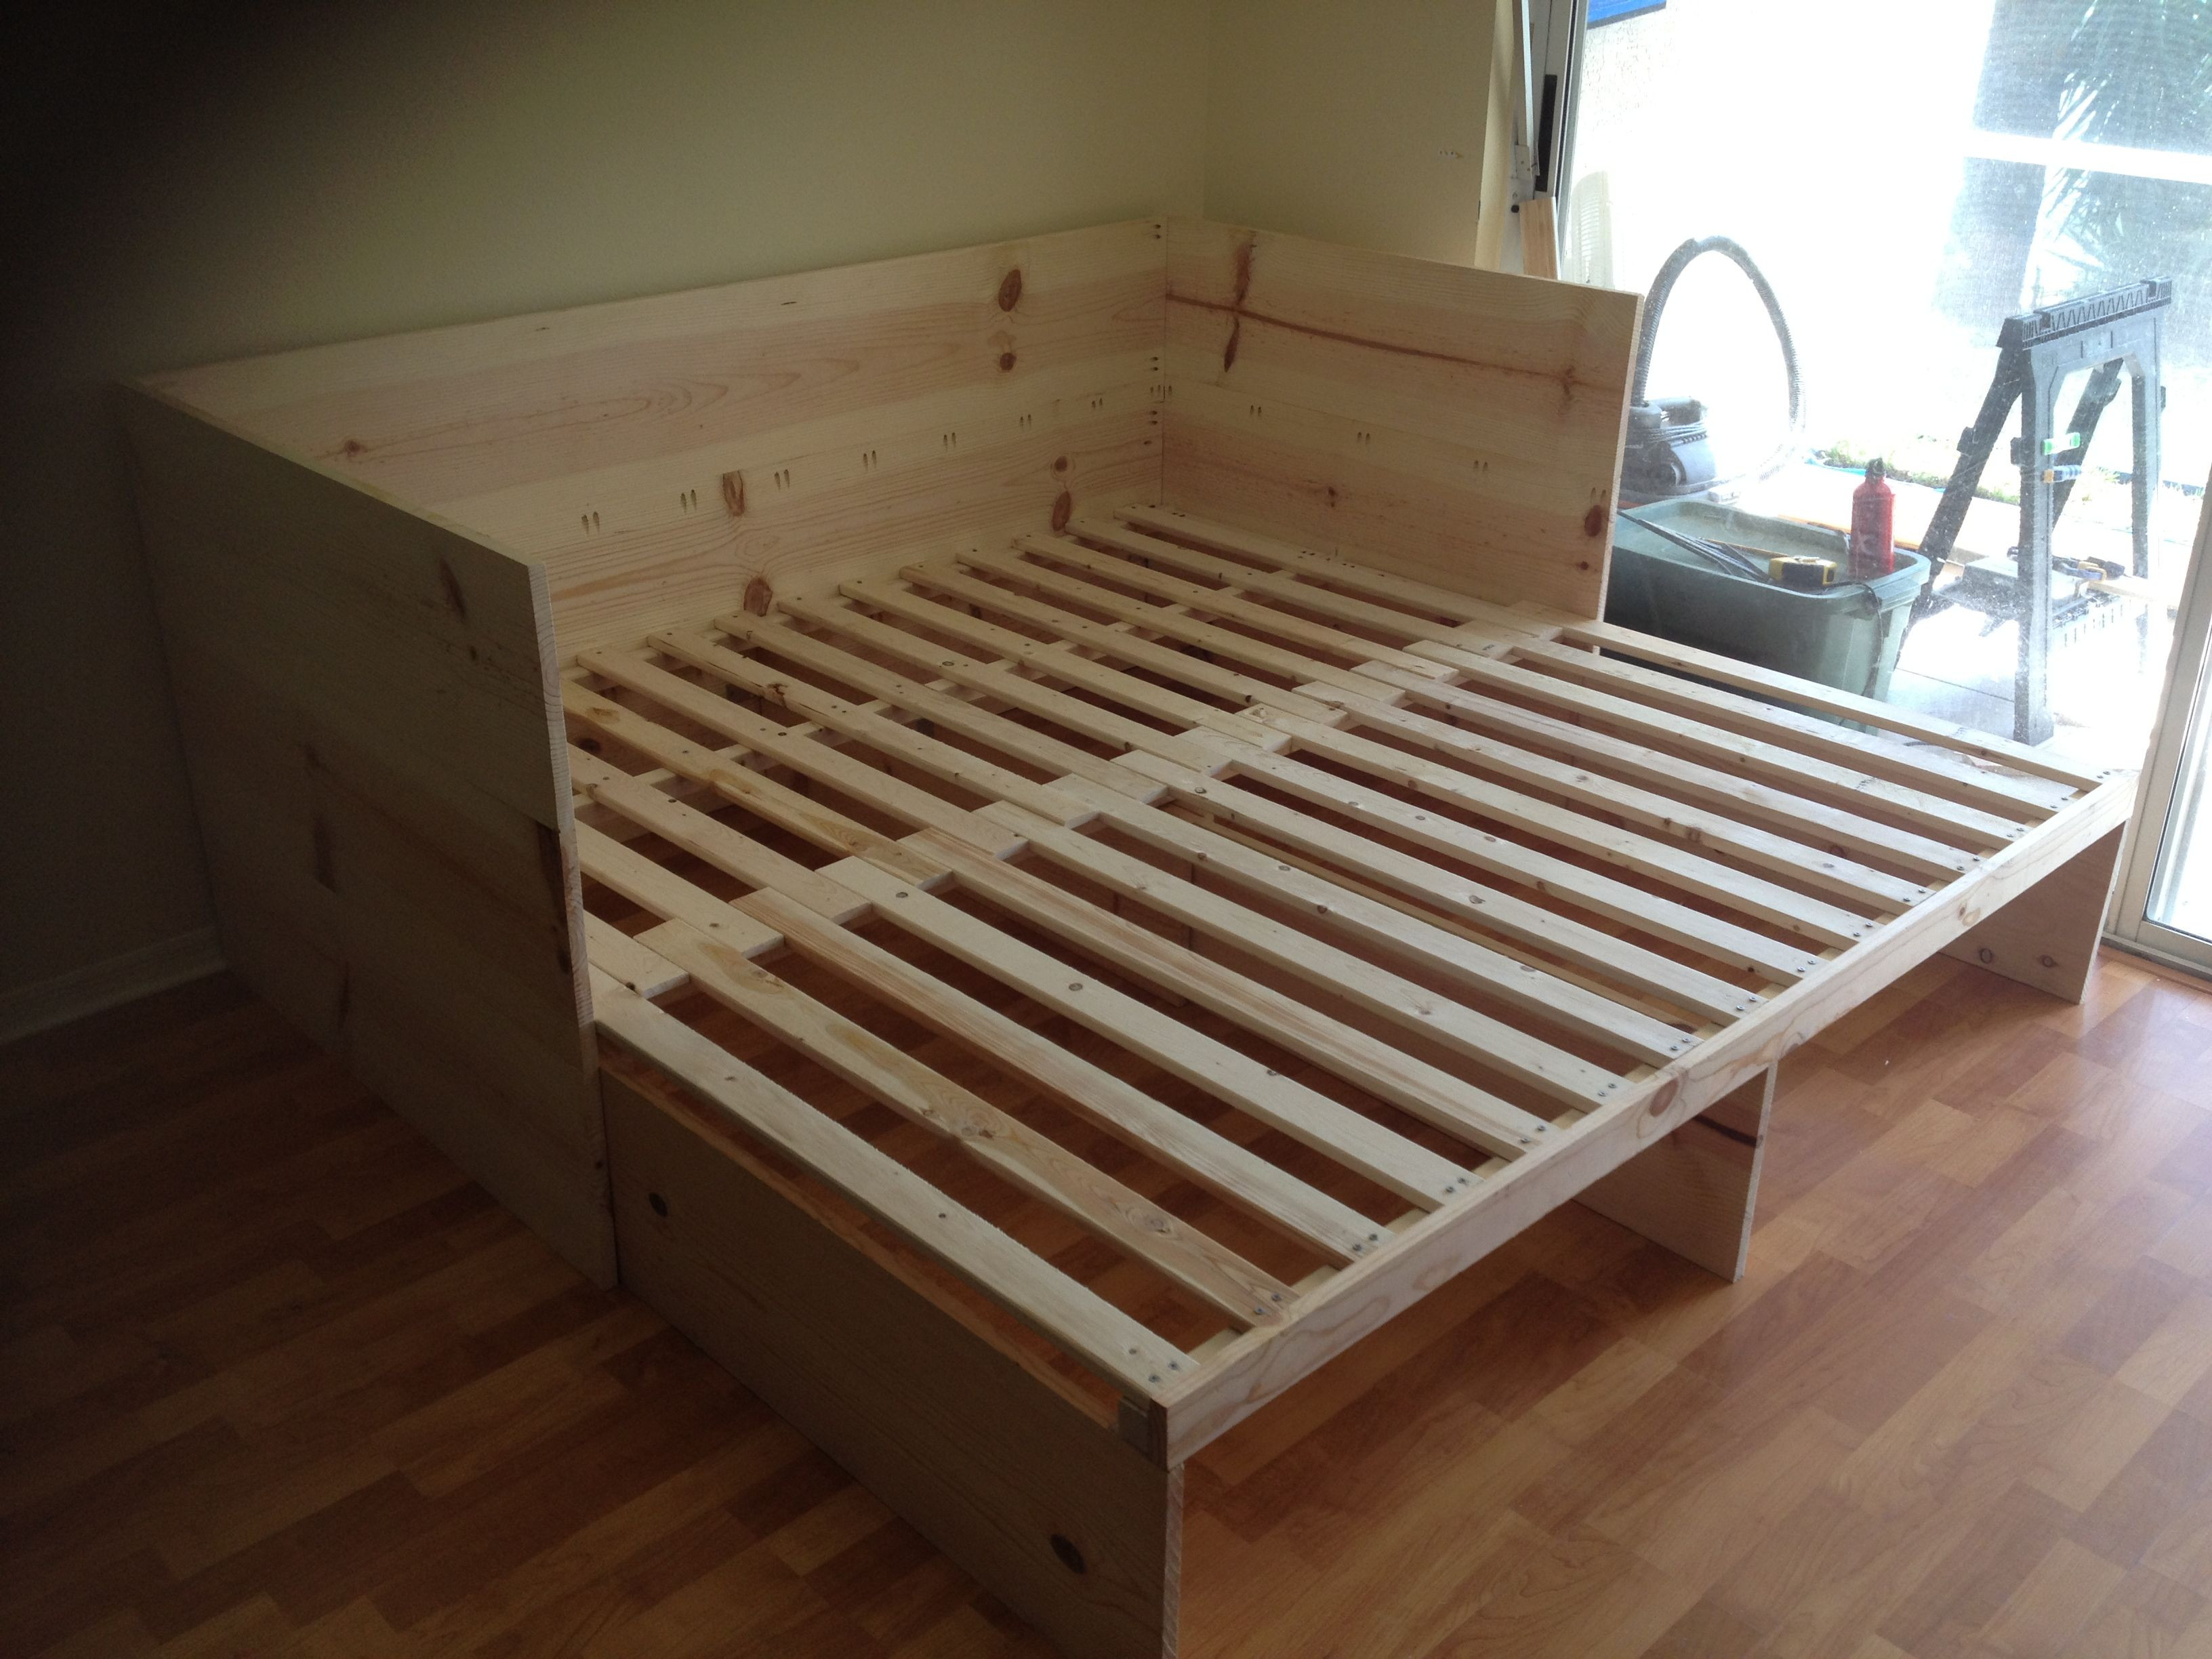 Best ideas about DIY Pull Out Bed . Save or Pin Could make this without headboard Twin to king pull out Now.